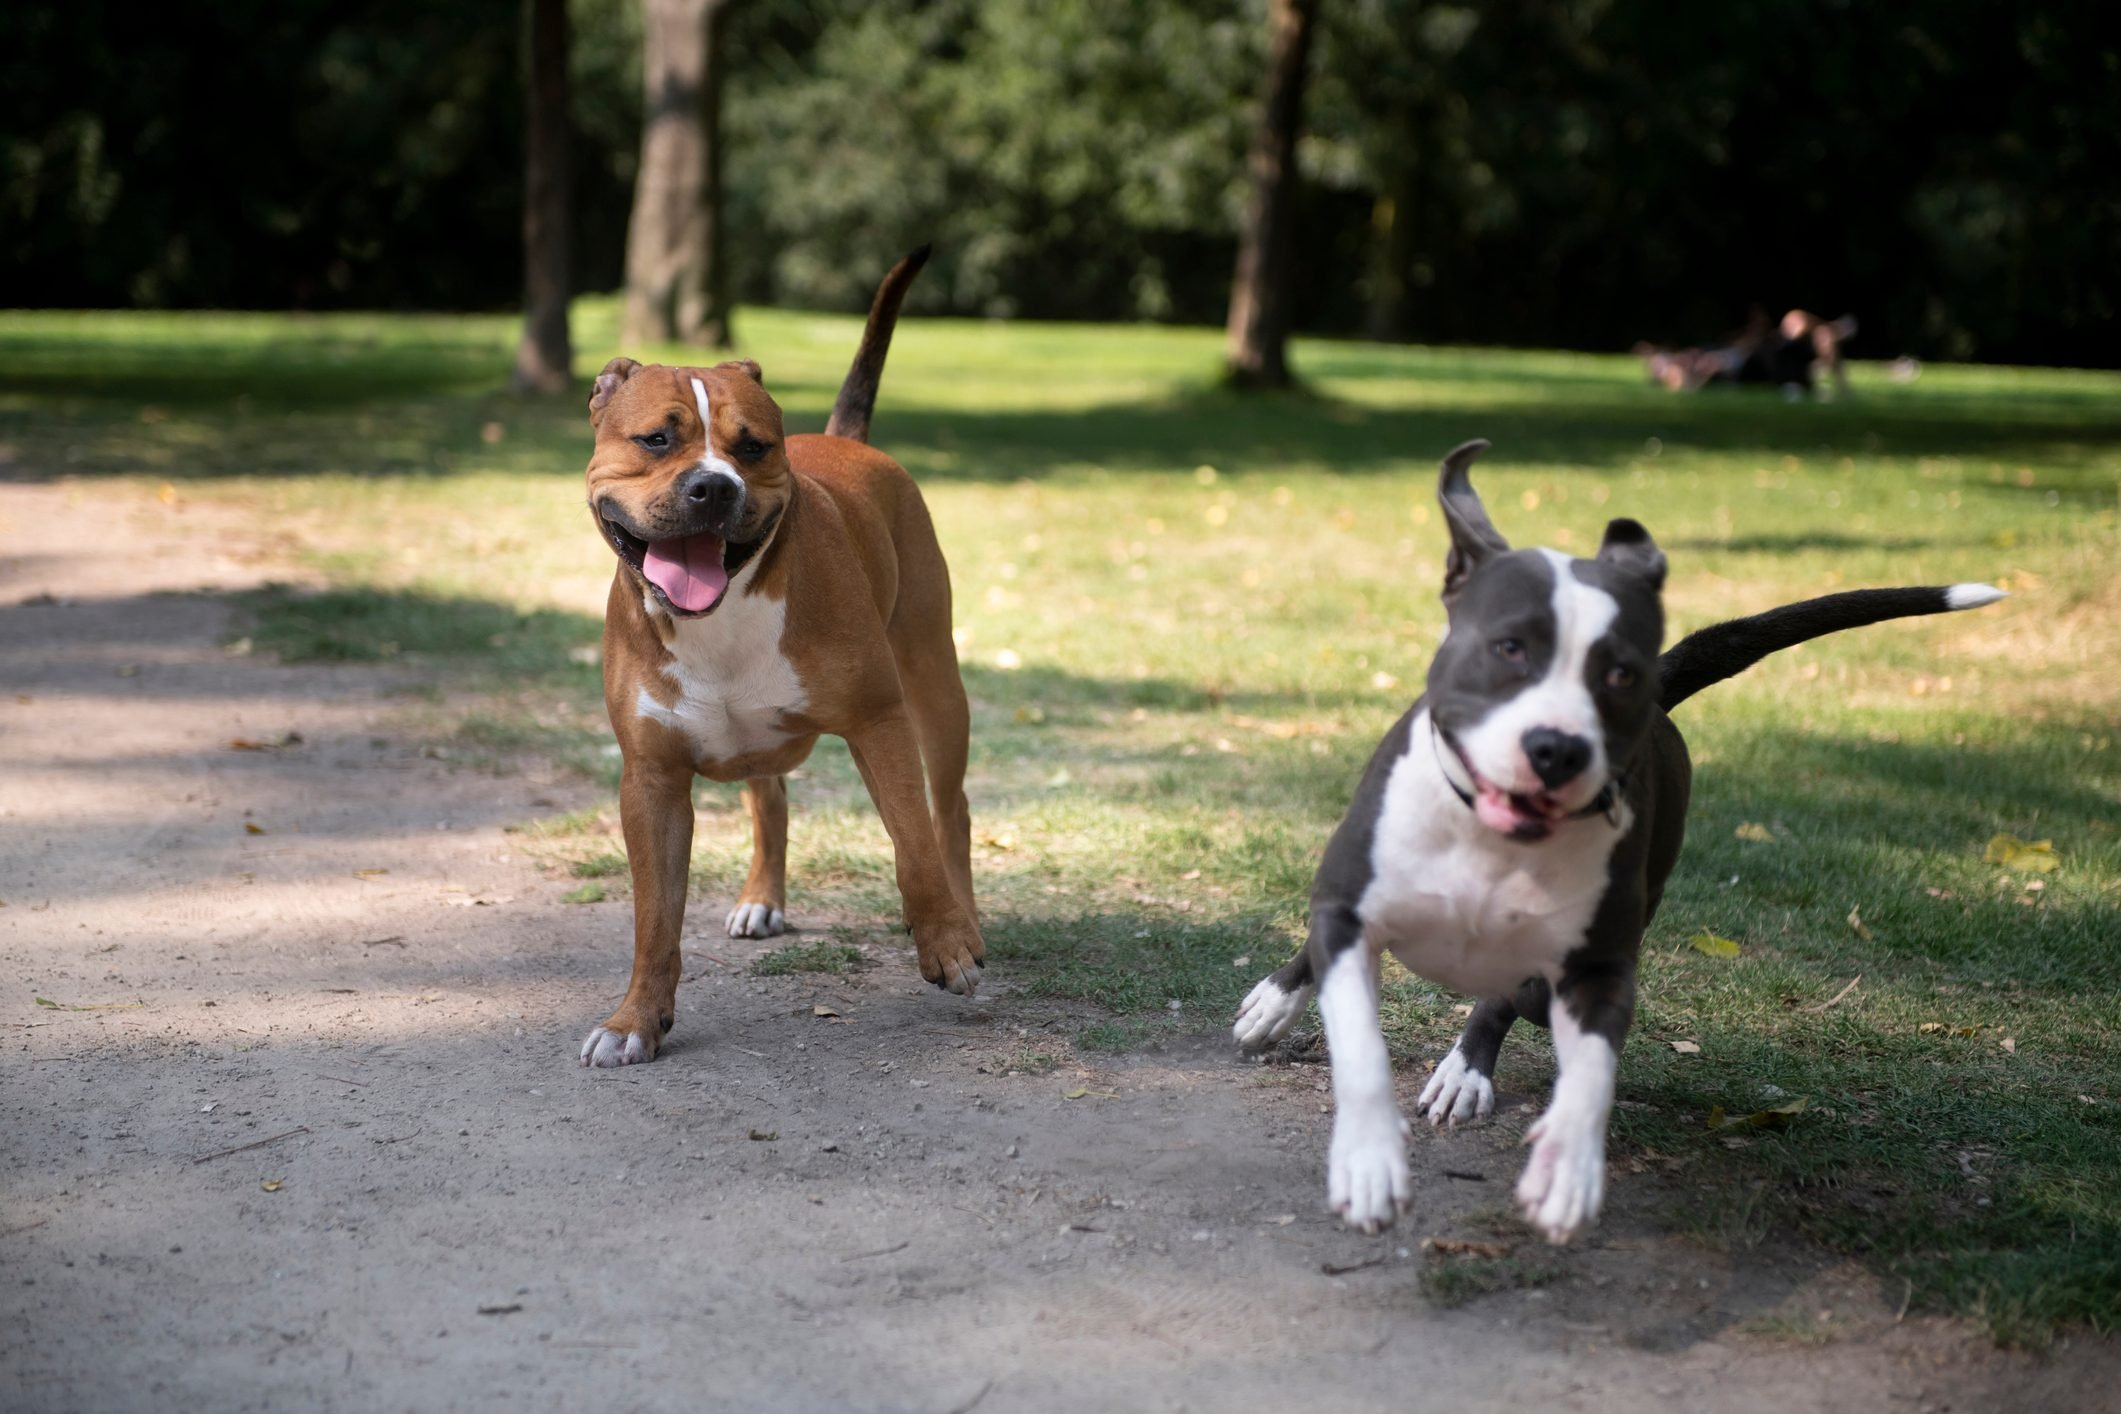 Happy dogs playing in the park